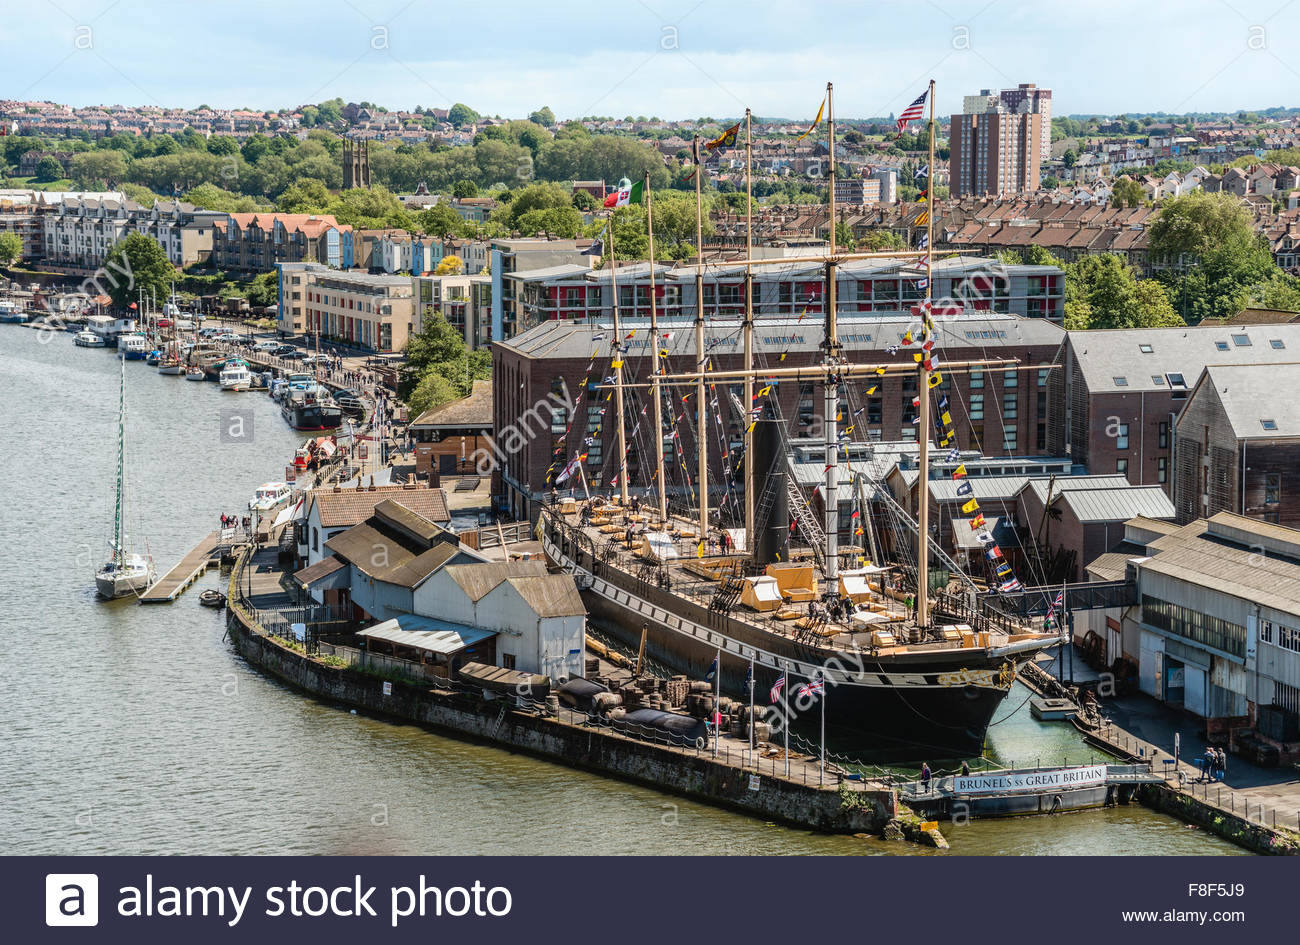 Brunels SS Great Britain is a museum ship and former passenger steamship at Bristol Harbor, Somerset, England, UK - Stock Image